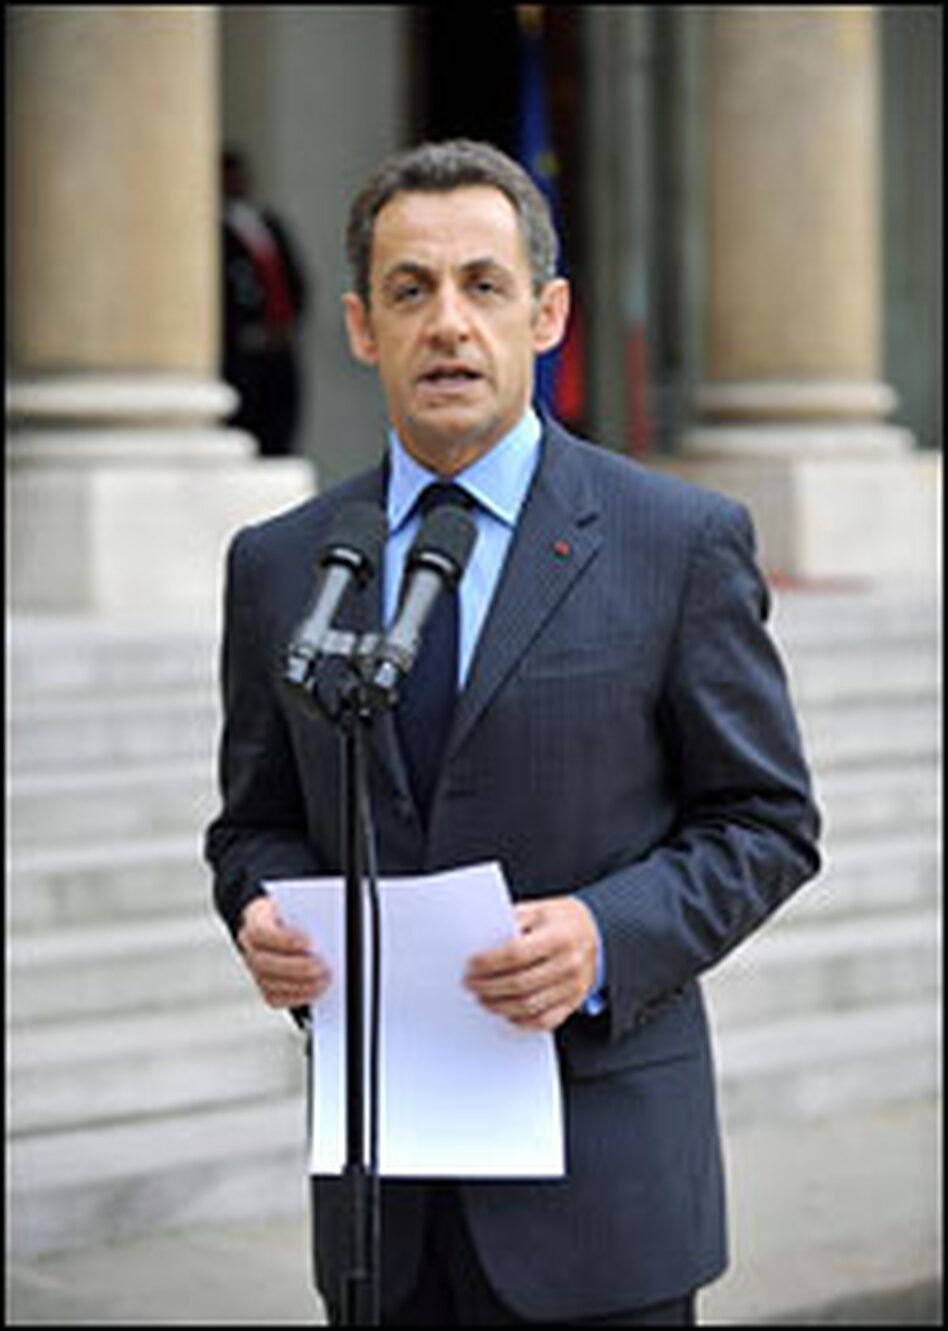 French President Nicolas Sarkozy addresses reporters in Paris, Oct. 6, 2008, before an emergency meeting with the country's leading bankers and insurers amid the ongoing global financial crisis.